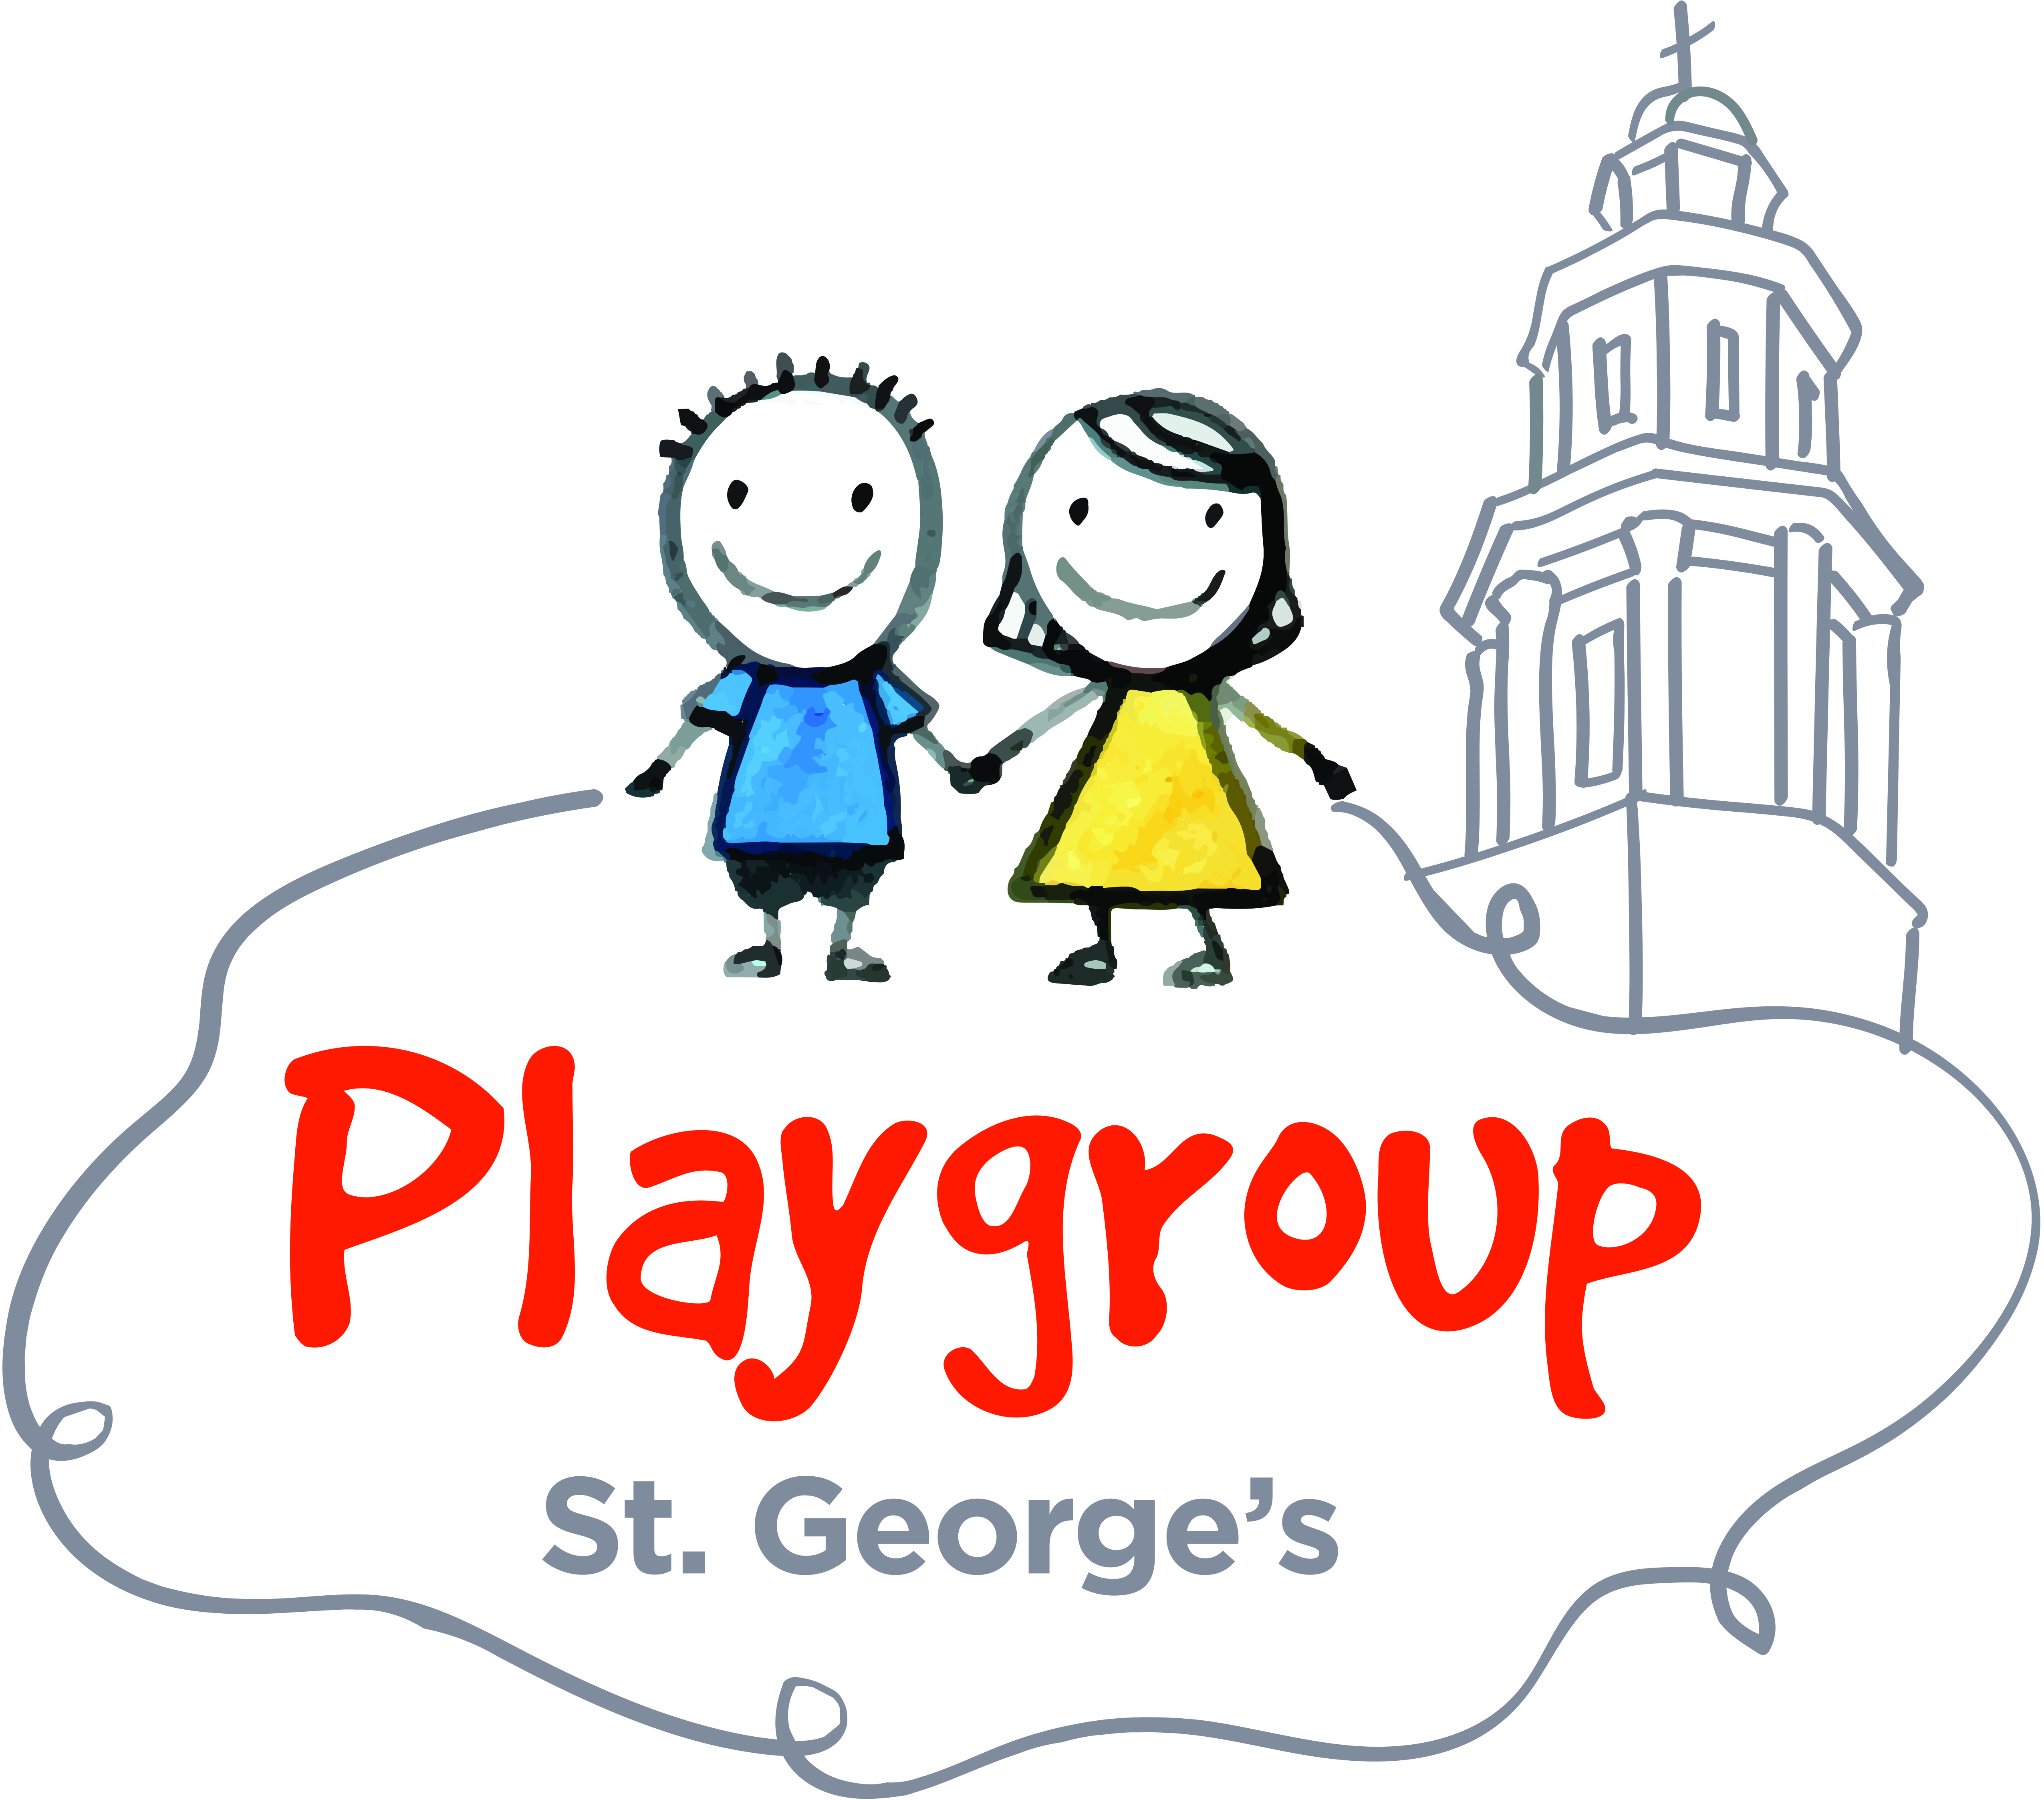 Playgroup At St Georges Is A Great Opportunity To Get Out Of The House Relax With Coffee And Chat Other Parents Grandparents Caregivers